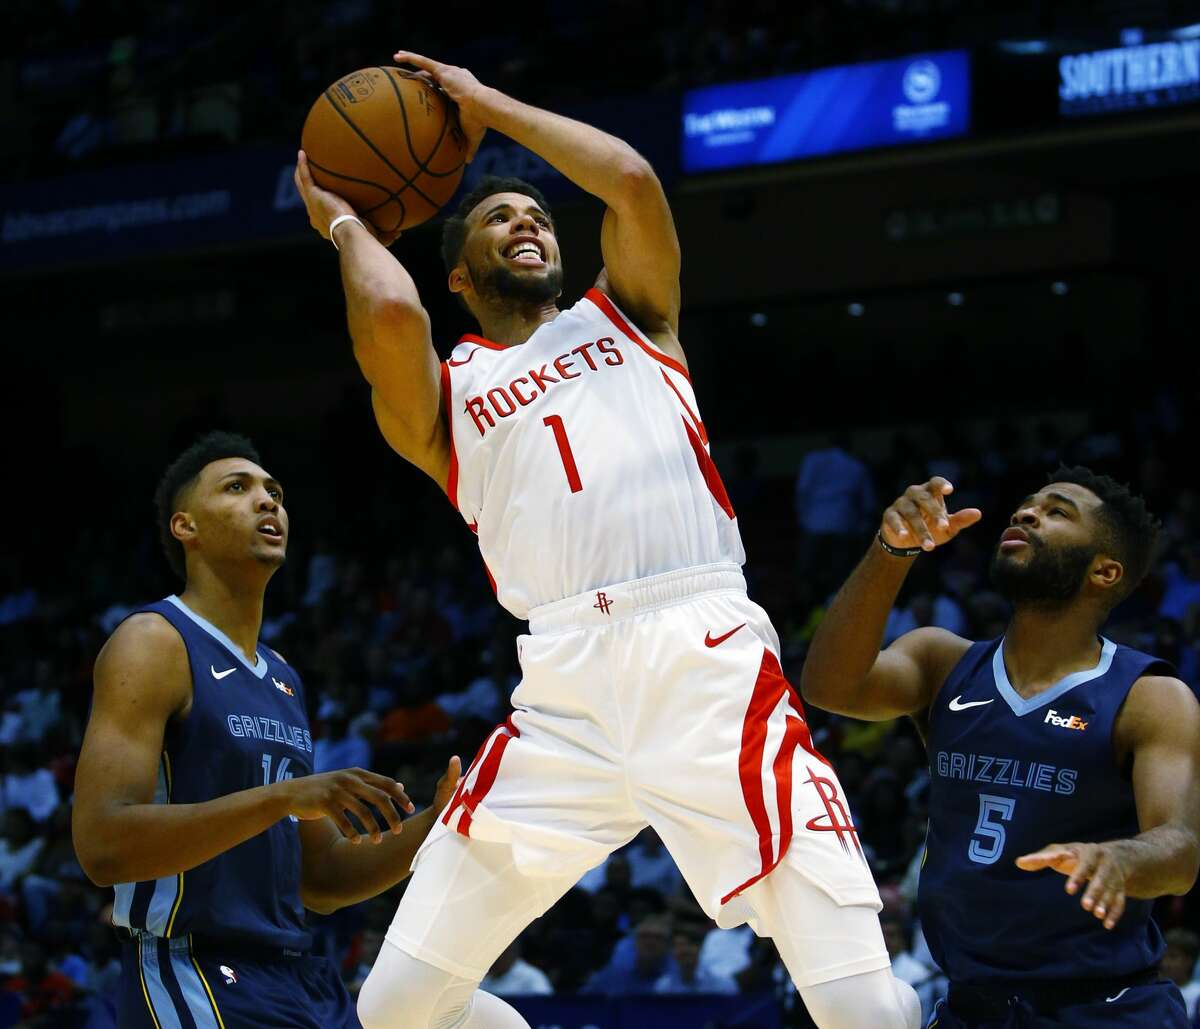 PHOTOS: Best Rockets home games in 2018-19 season Houston Rockets guard Michael Carter-Williams (1) puts up a shot over Memphis Grizzlies center Doral Moore (14) and guard Andrew Harrison (5) during the second half of a preseason NBA basketball game, Tuesday, Oct. 2, 2018, in Birmingham, Ala. Houston Rockets won 131-115. (AP Photo/Butch Dill) >>>See the Rockets' best home games of the 2018-19 season ...